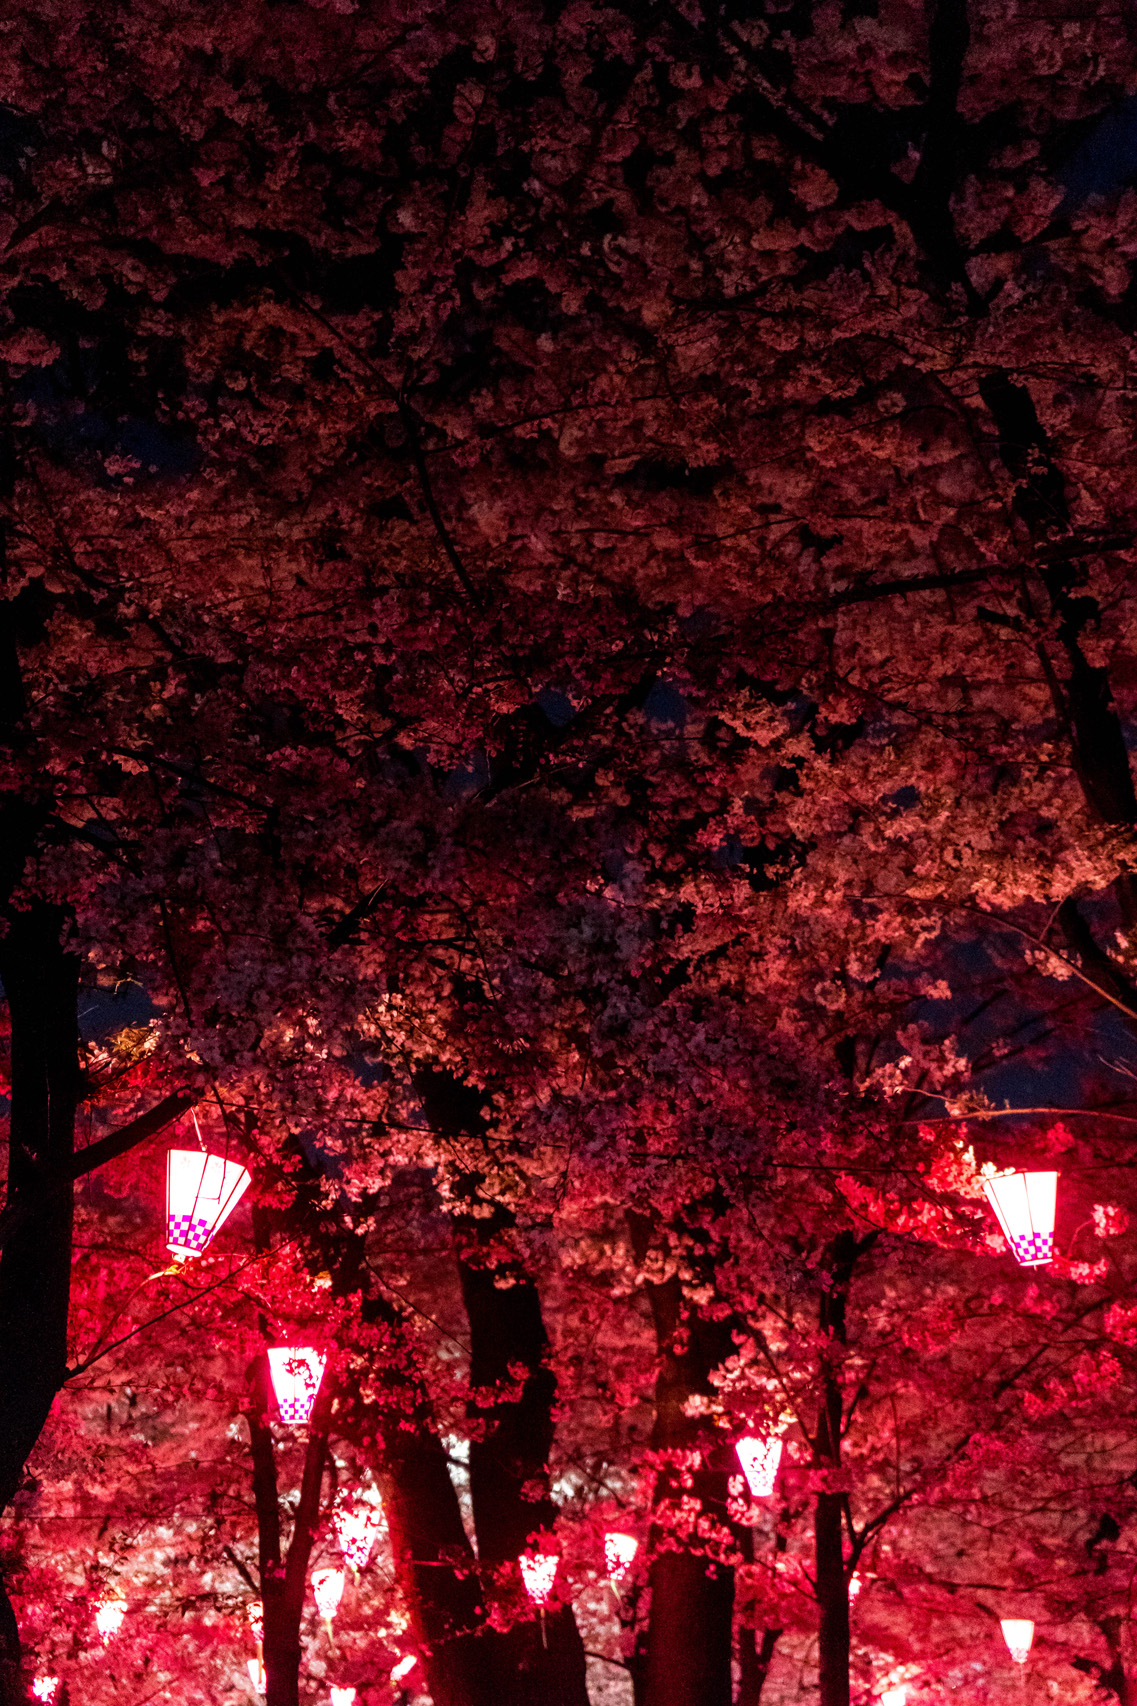 Hanami festival by night, Tsurumai park, Nagoya